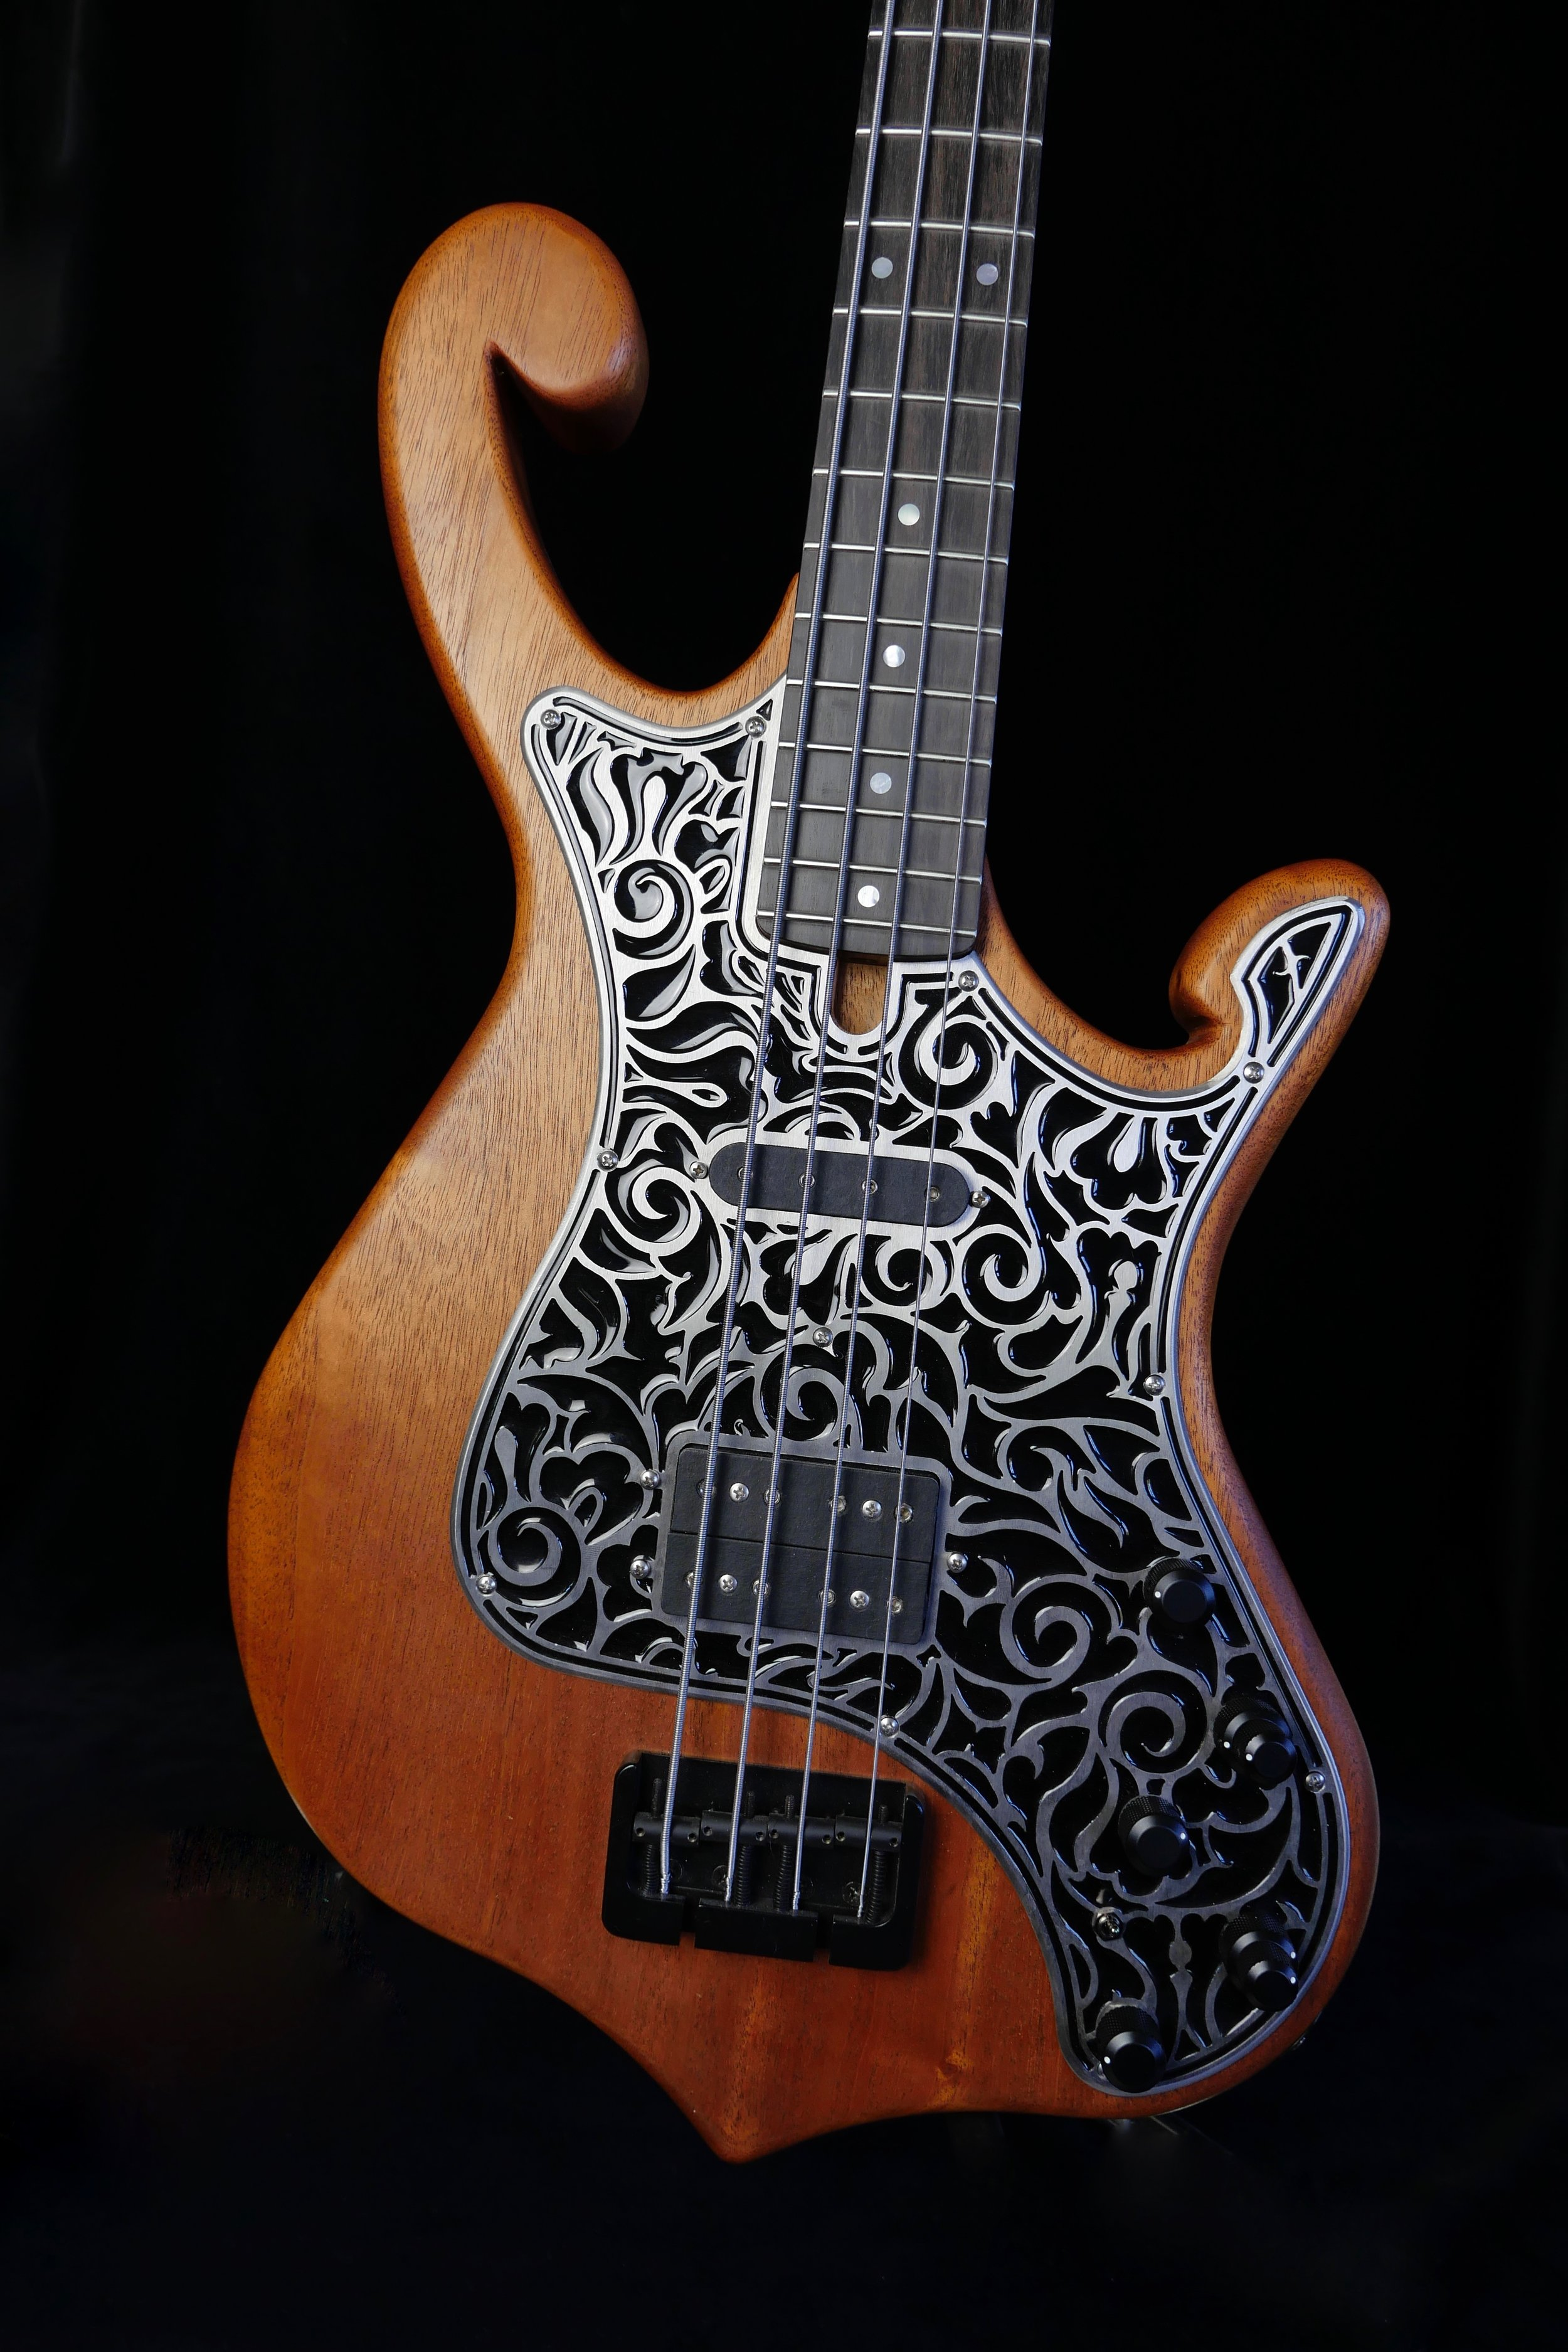 Your individual Pickguard - Laser engraved, hand painted, made of plastic, wood or even leather.